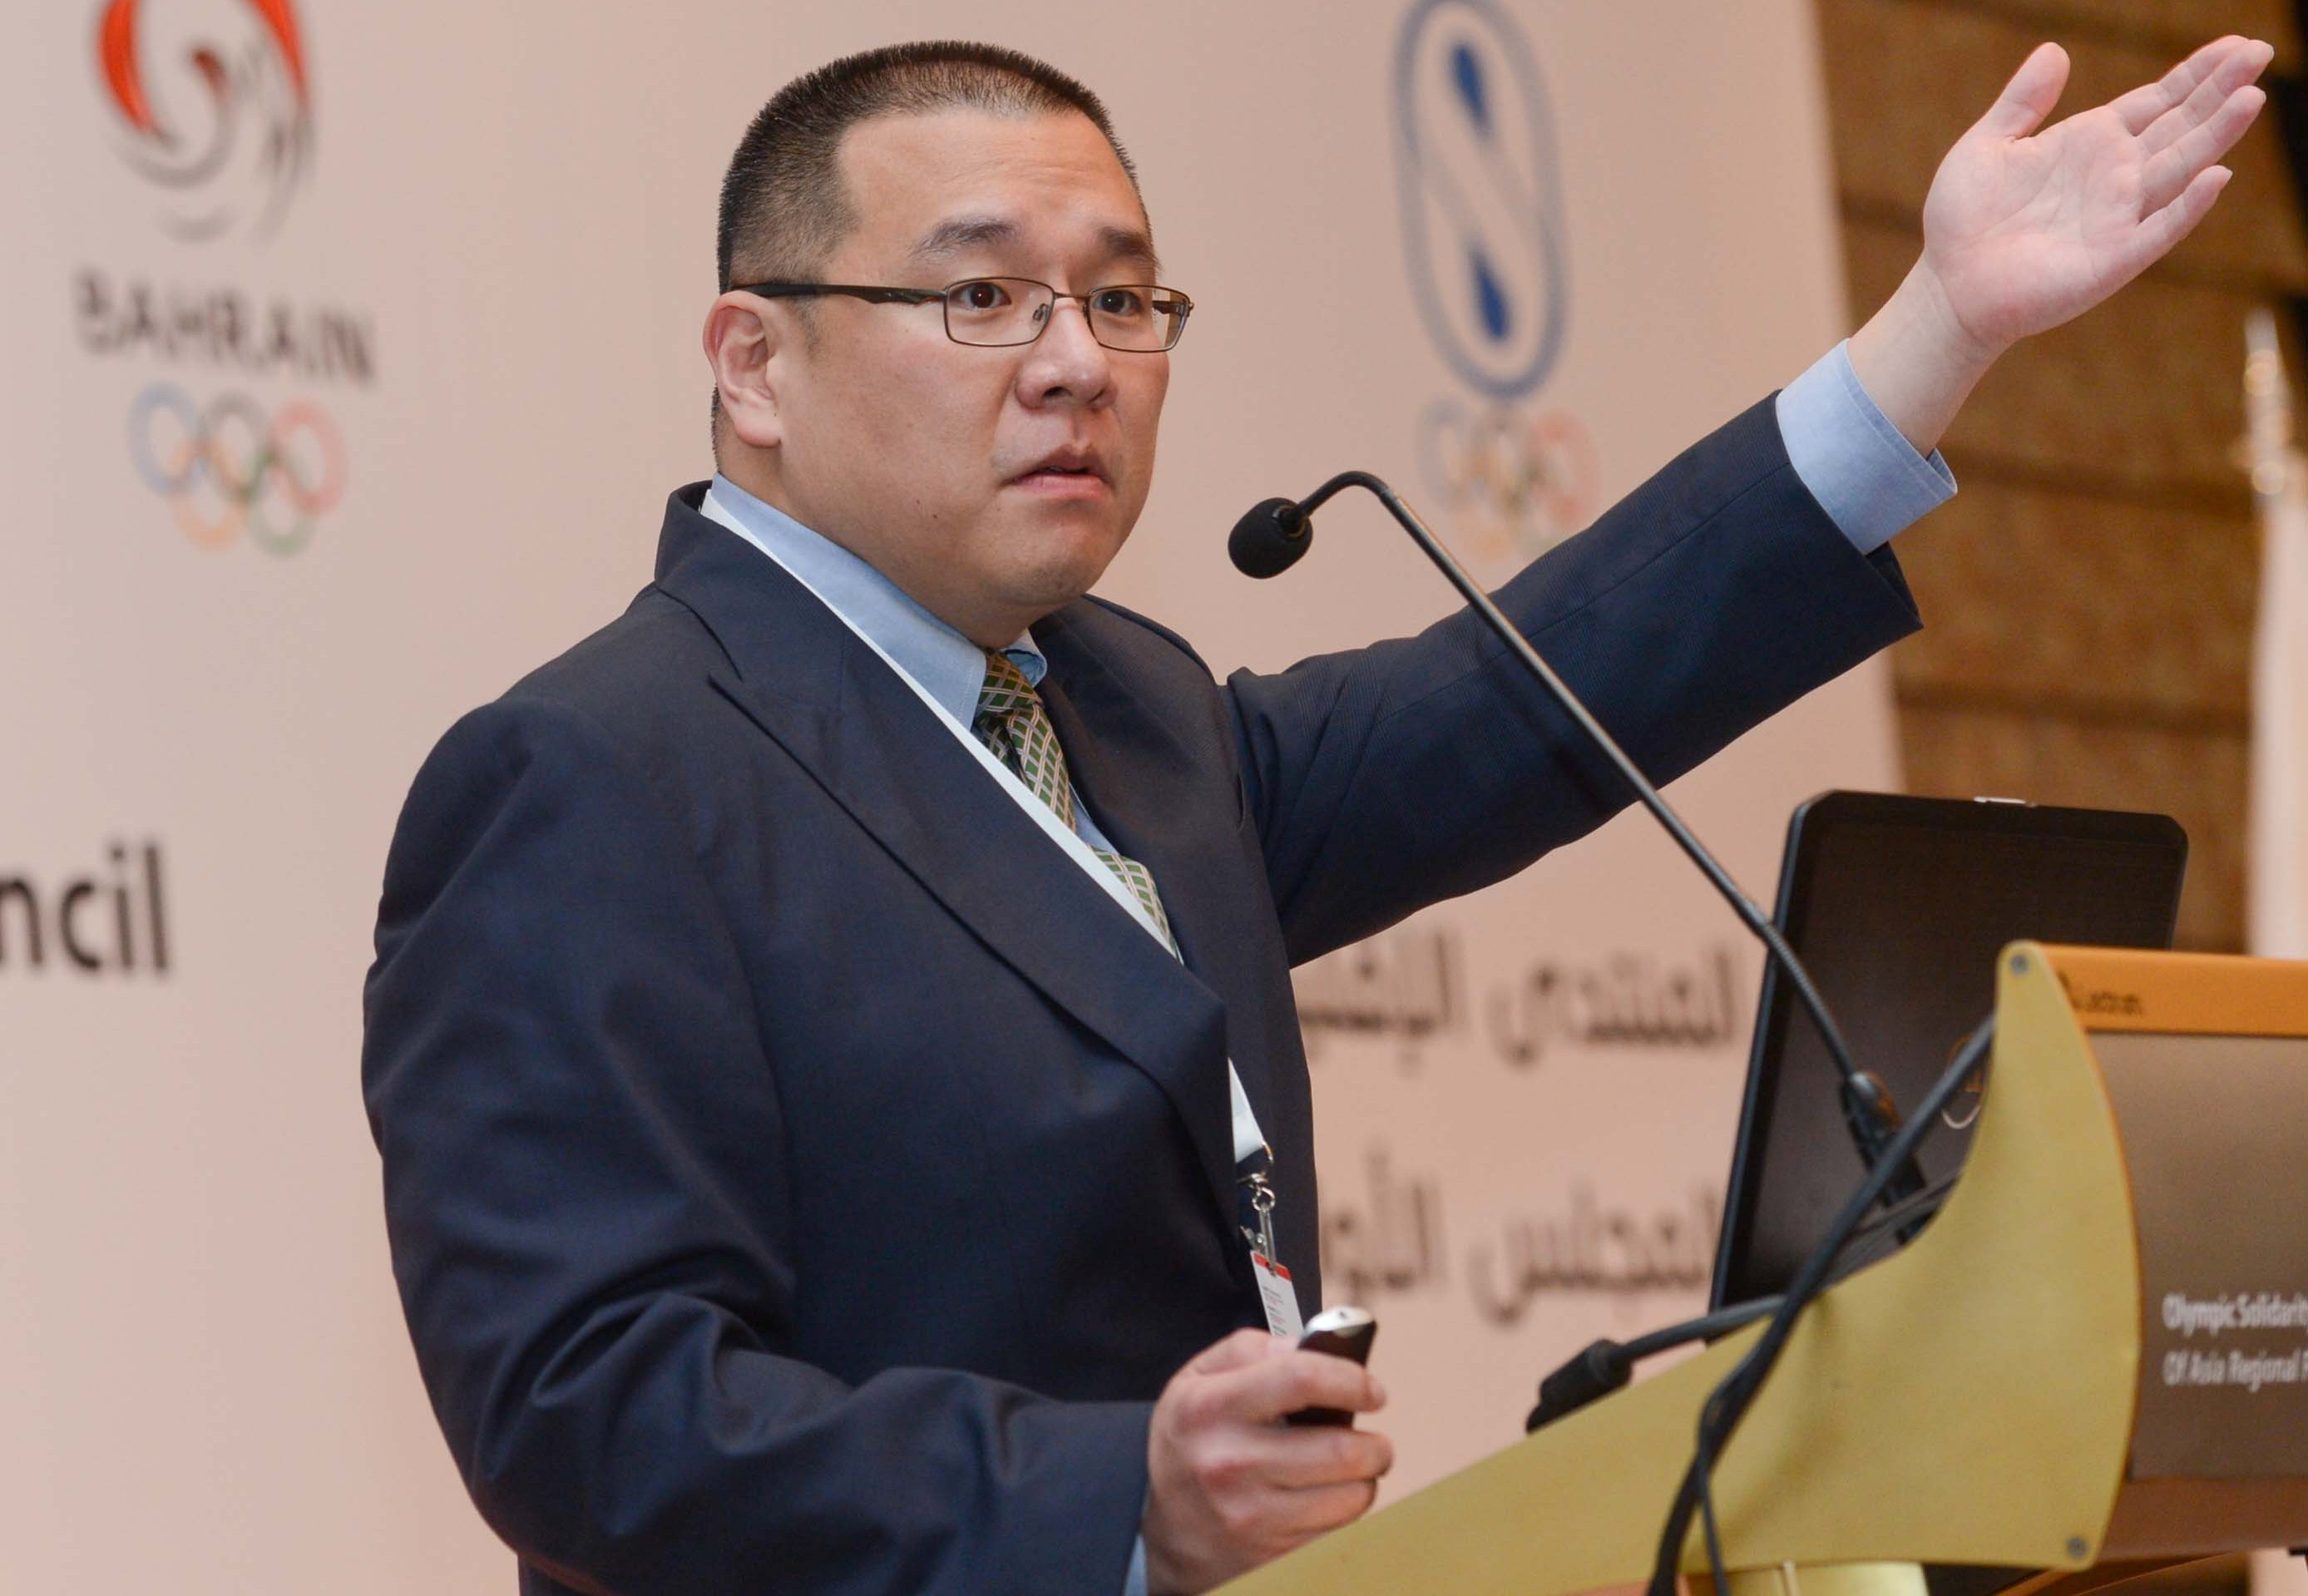 Sungsik Cho providing an update about the Incheon 2014 Asian Games during the OCA Regional Forum ©BOC